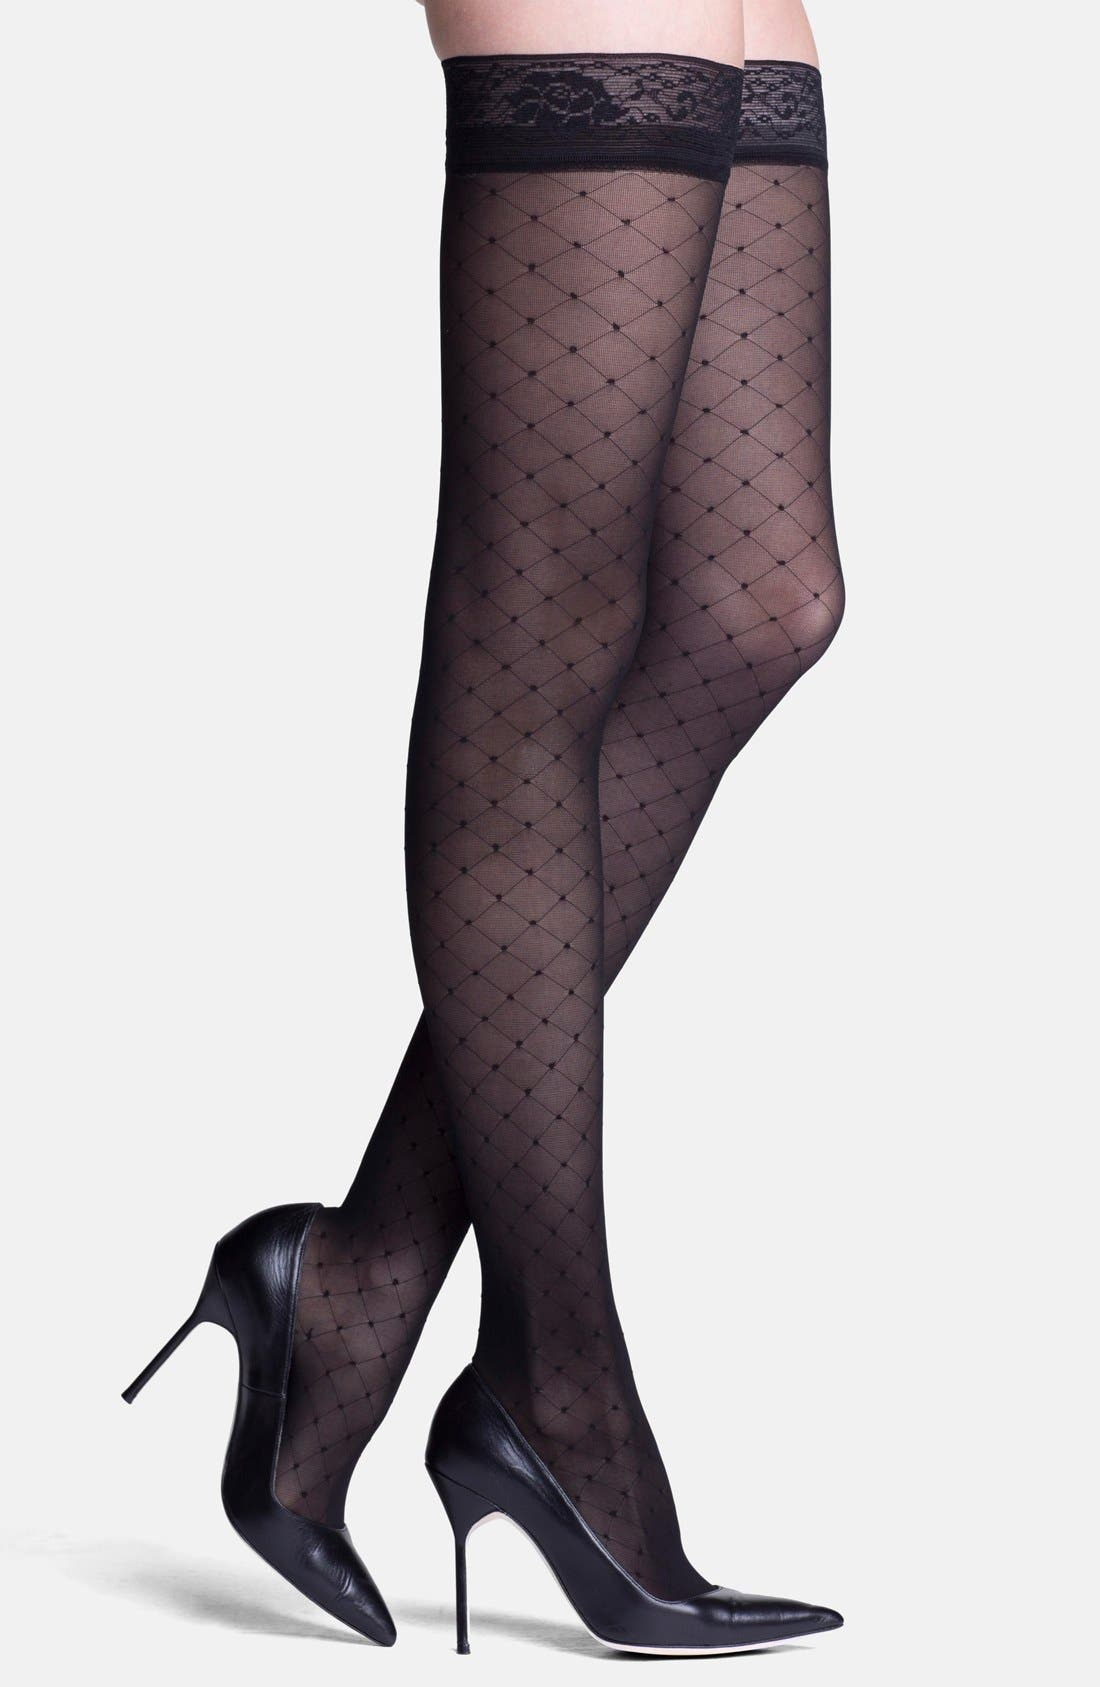 Main Image - INSIGNIA by SIGVARIS 'Starlet' Diamond Pattern Compression Thigh Highs